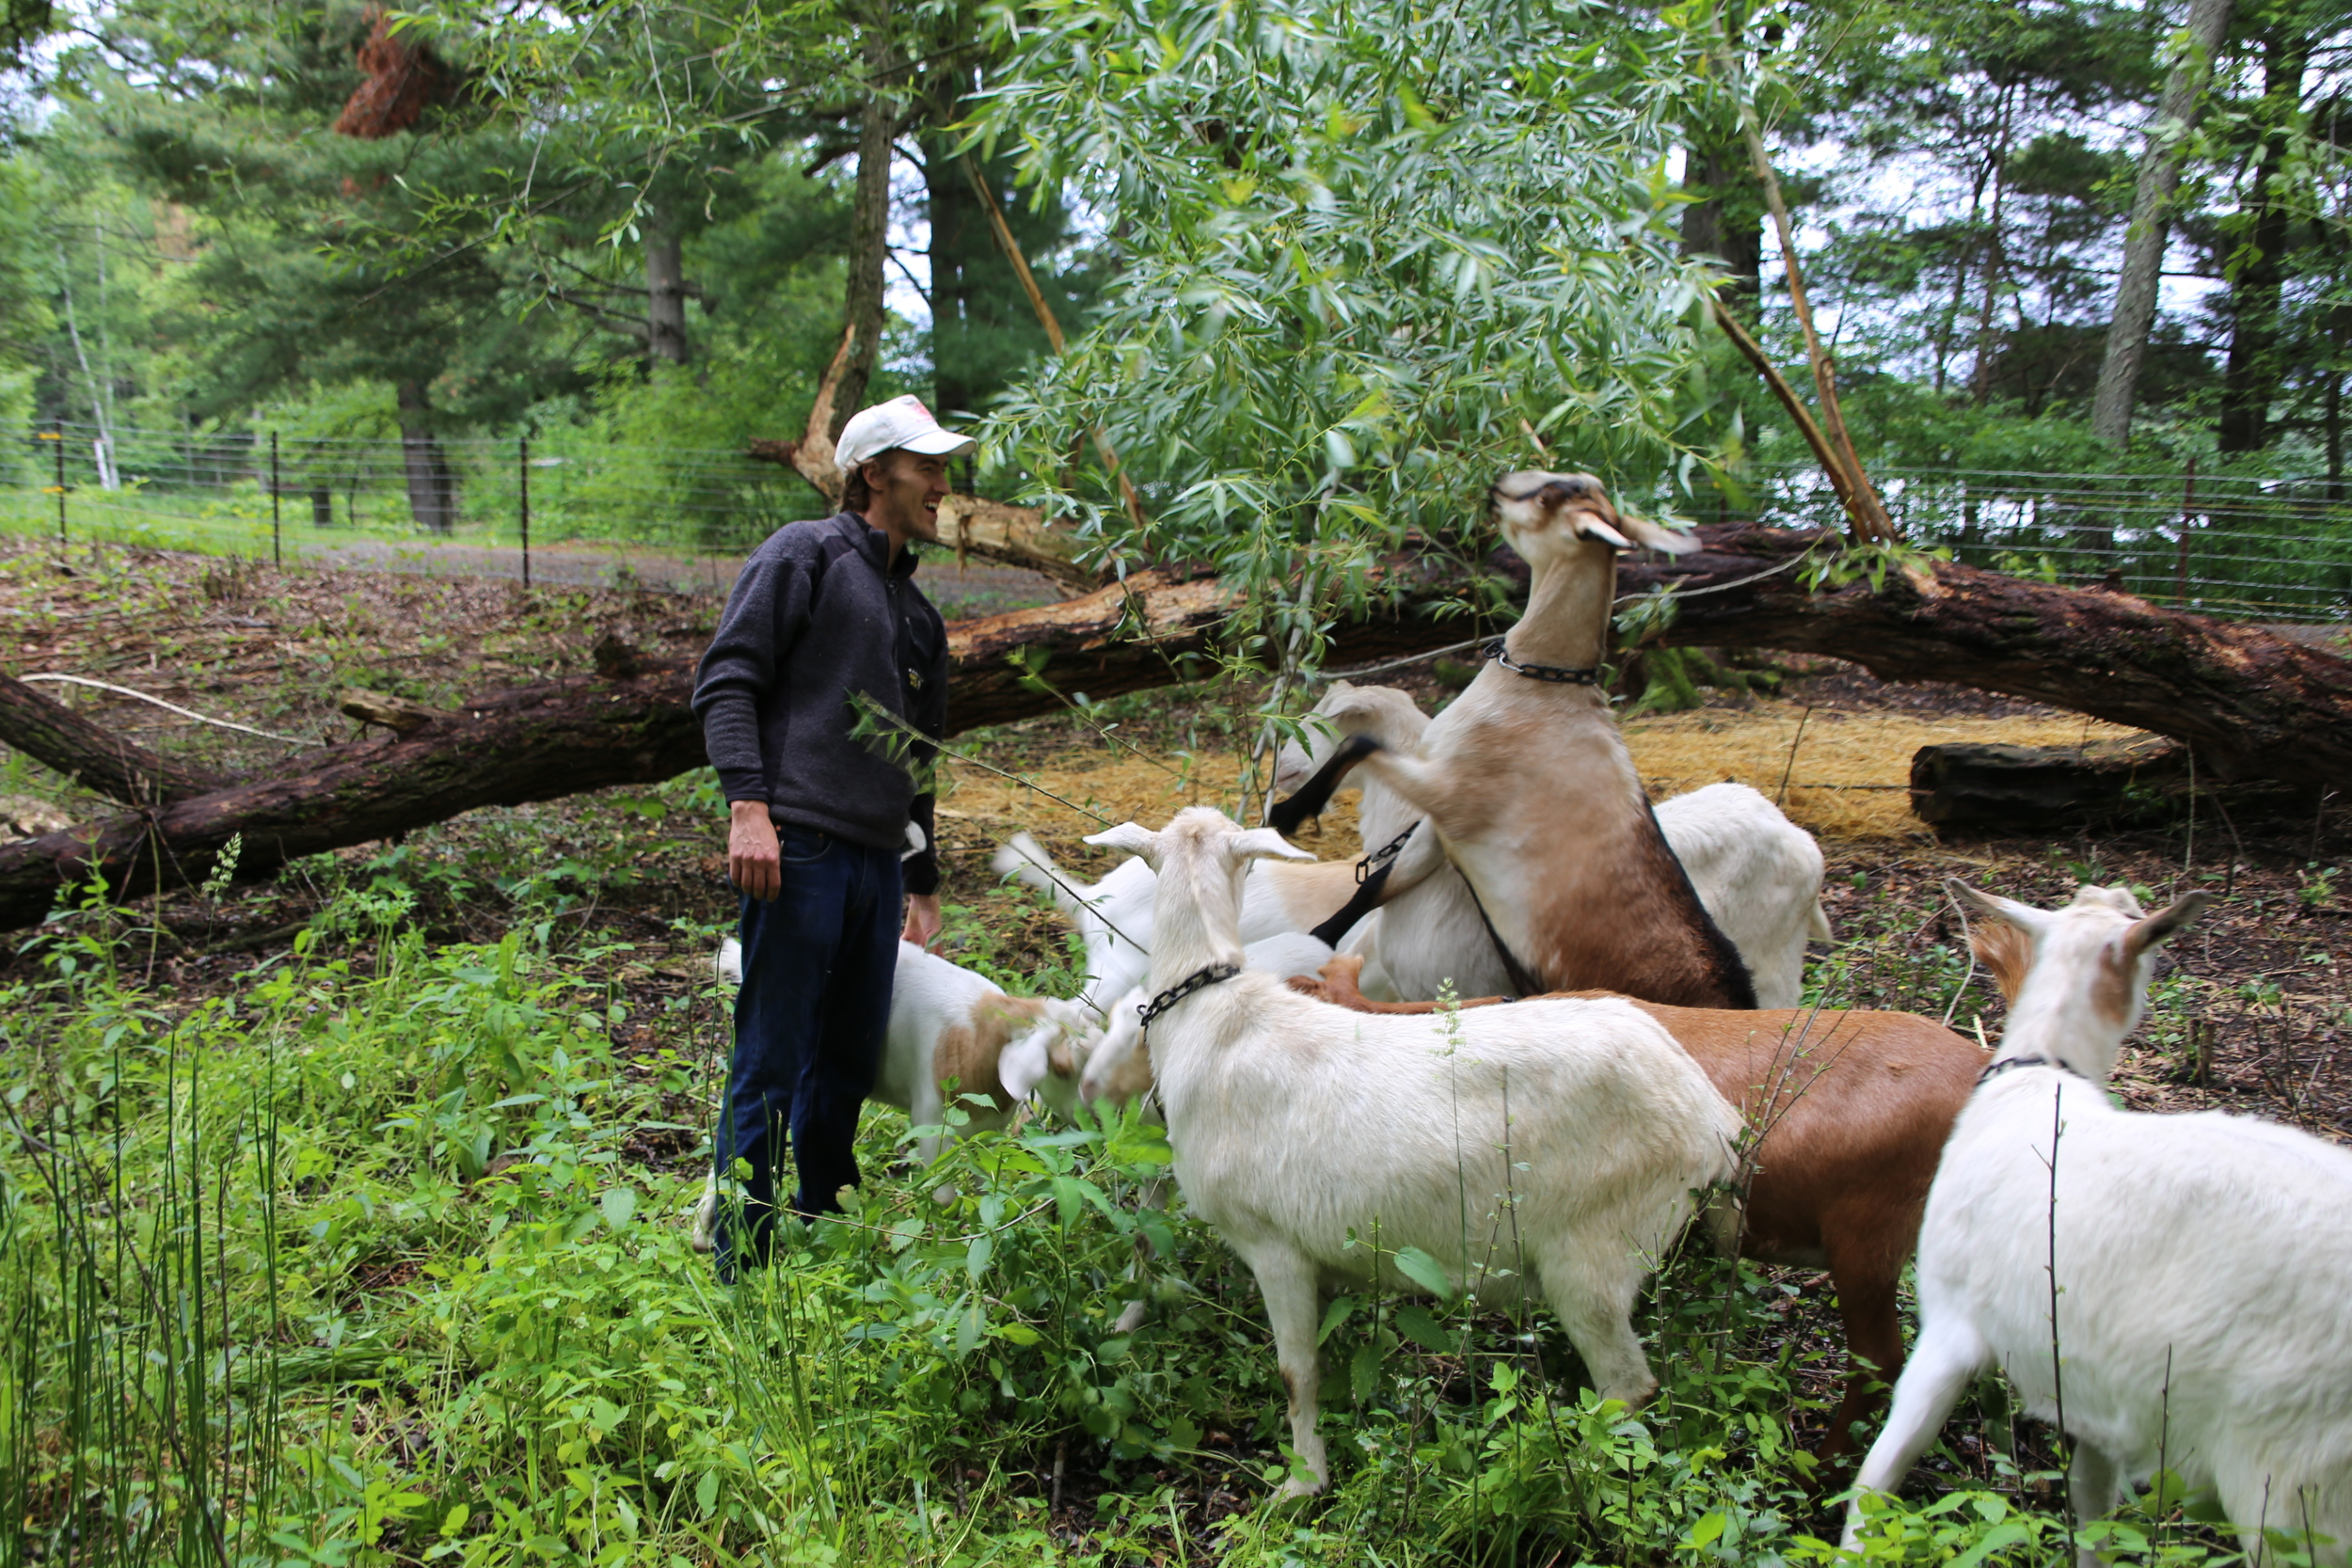 The goats and me (Eli) hanging out by the fallen (but living) willow tree in their permanent paddock. The goats love willow for its tasty leaves and the fresh growth tissue in its bark.